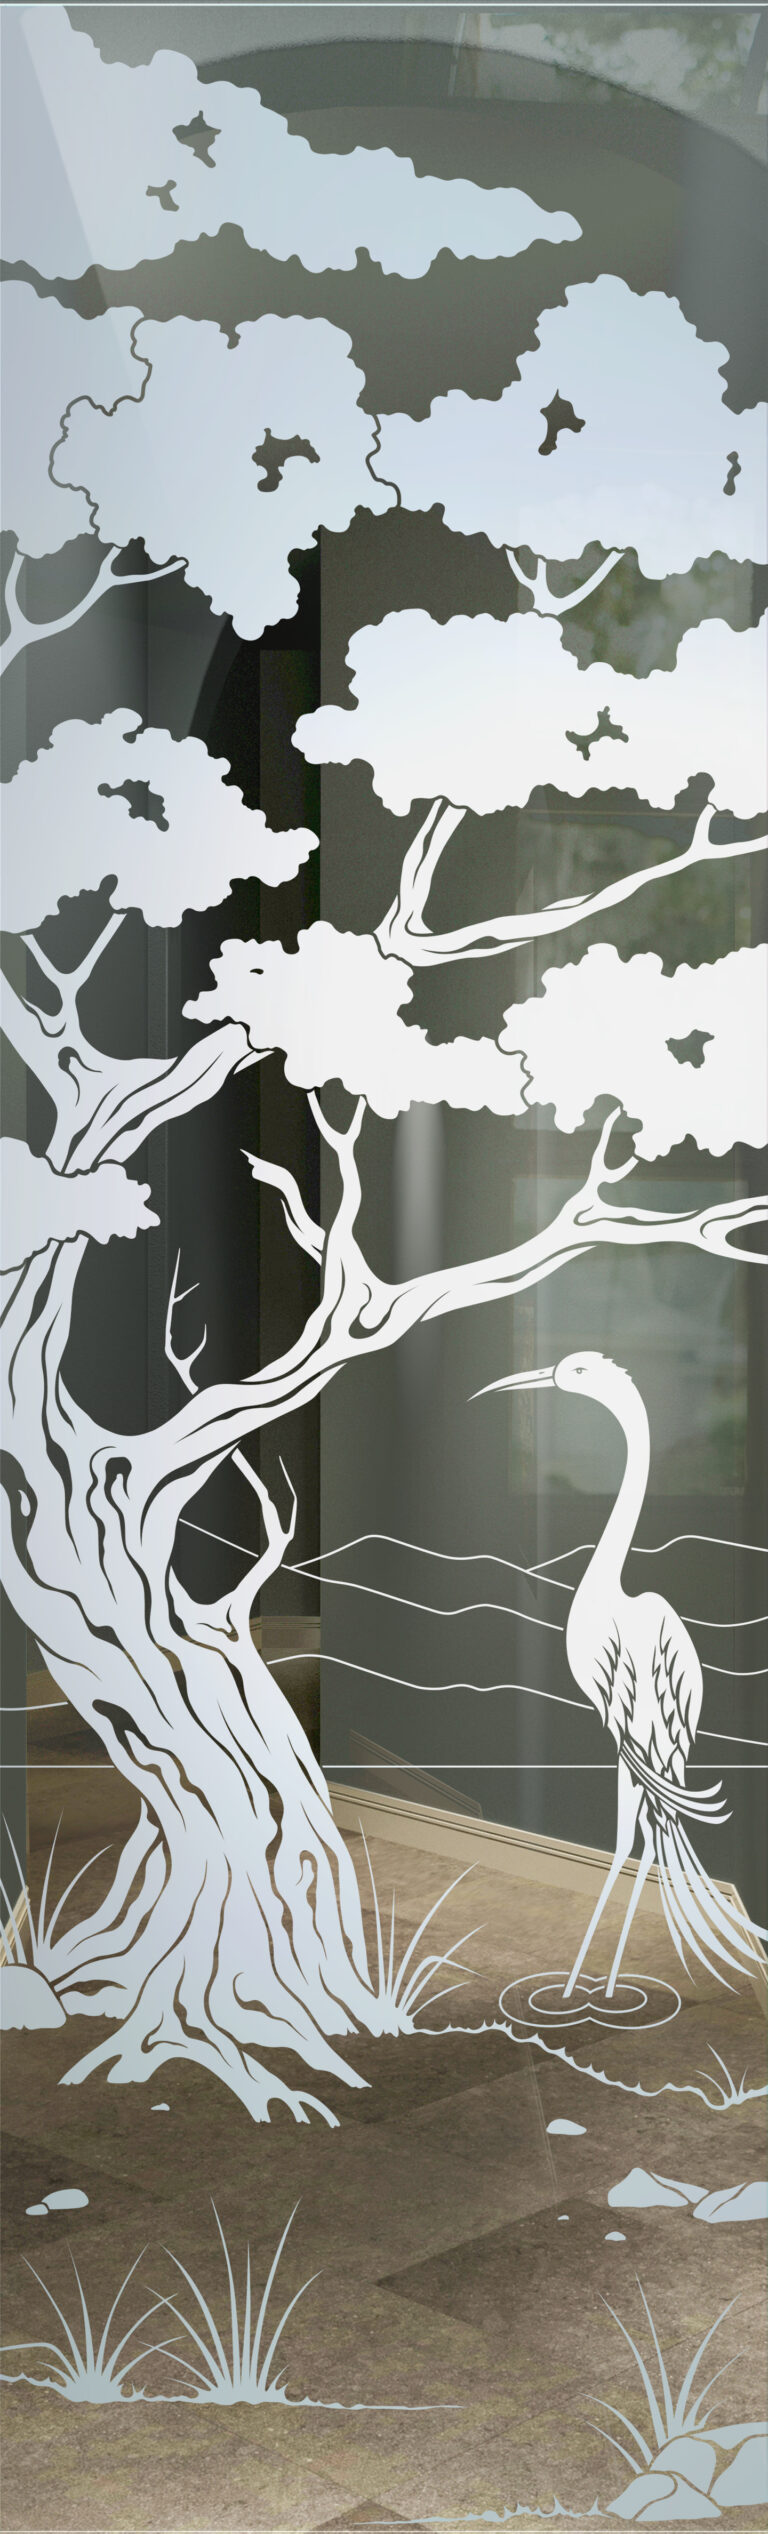 Bonsai Egret